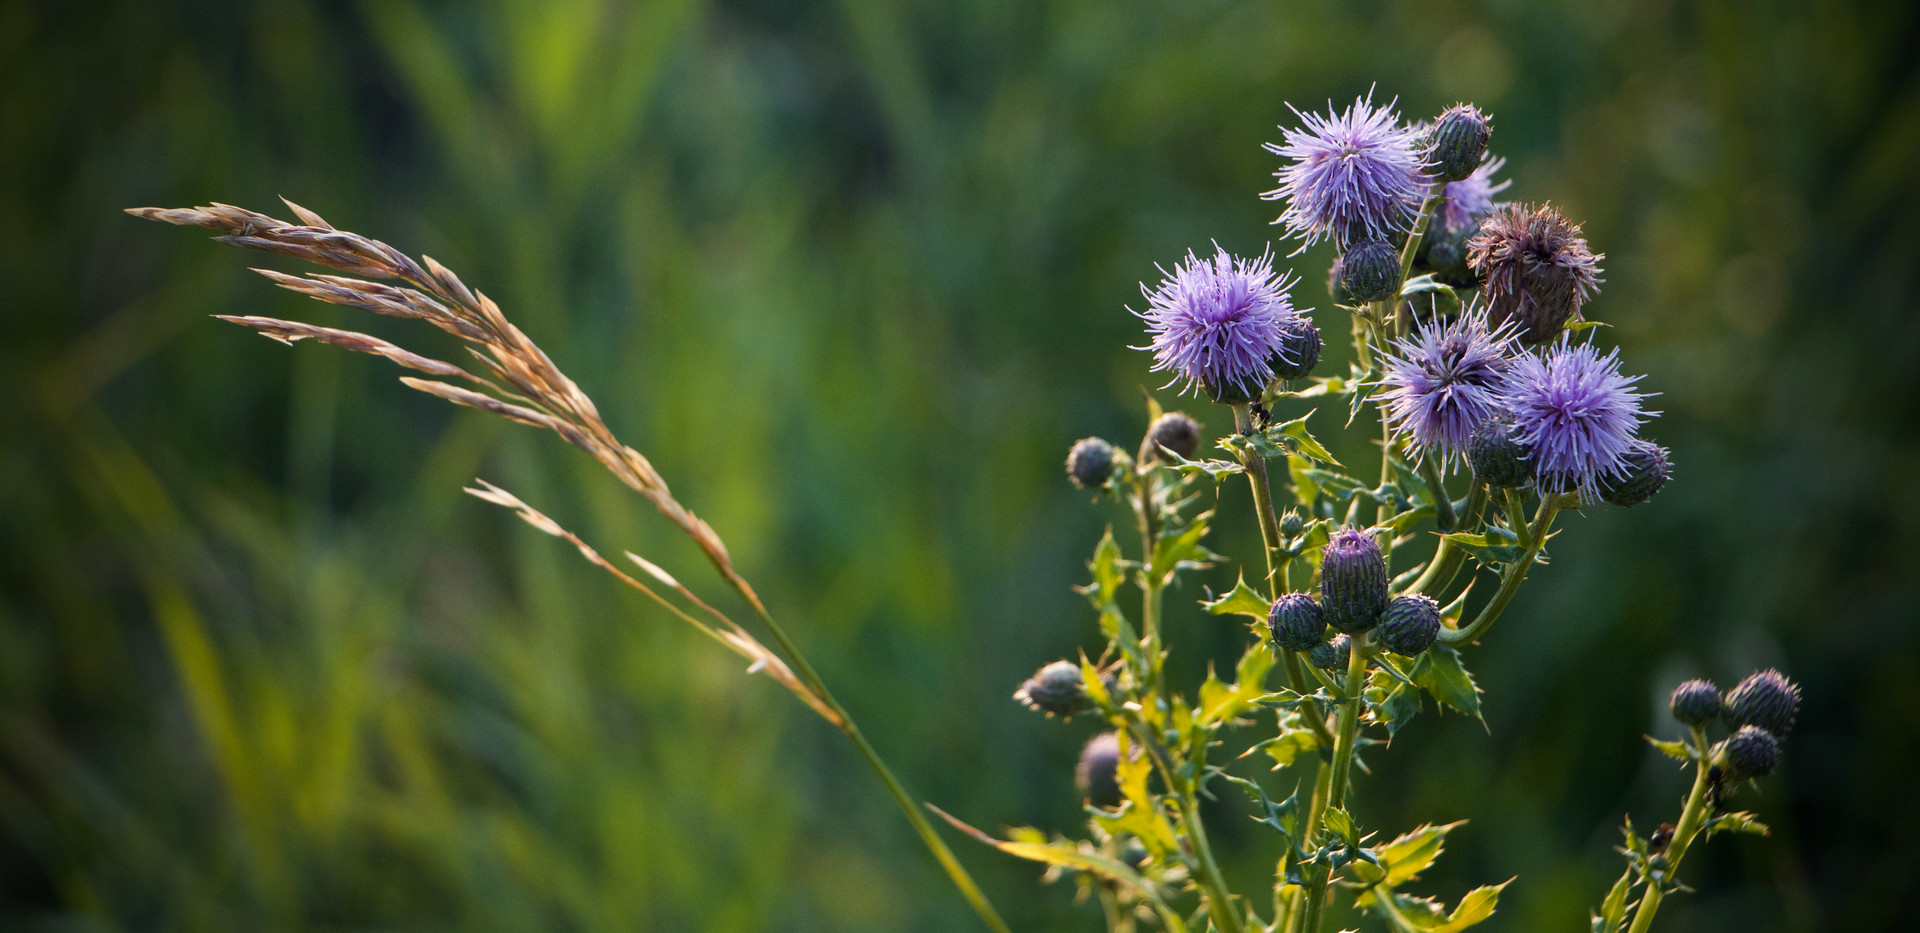 Grass and Thistle